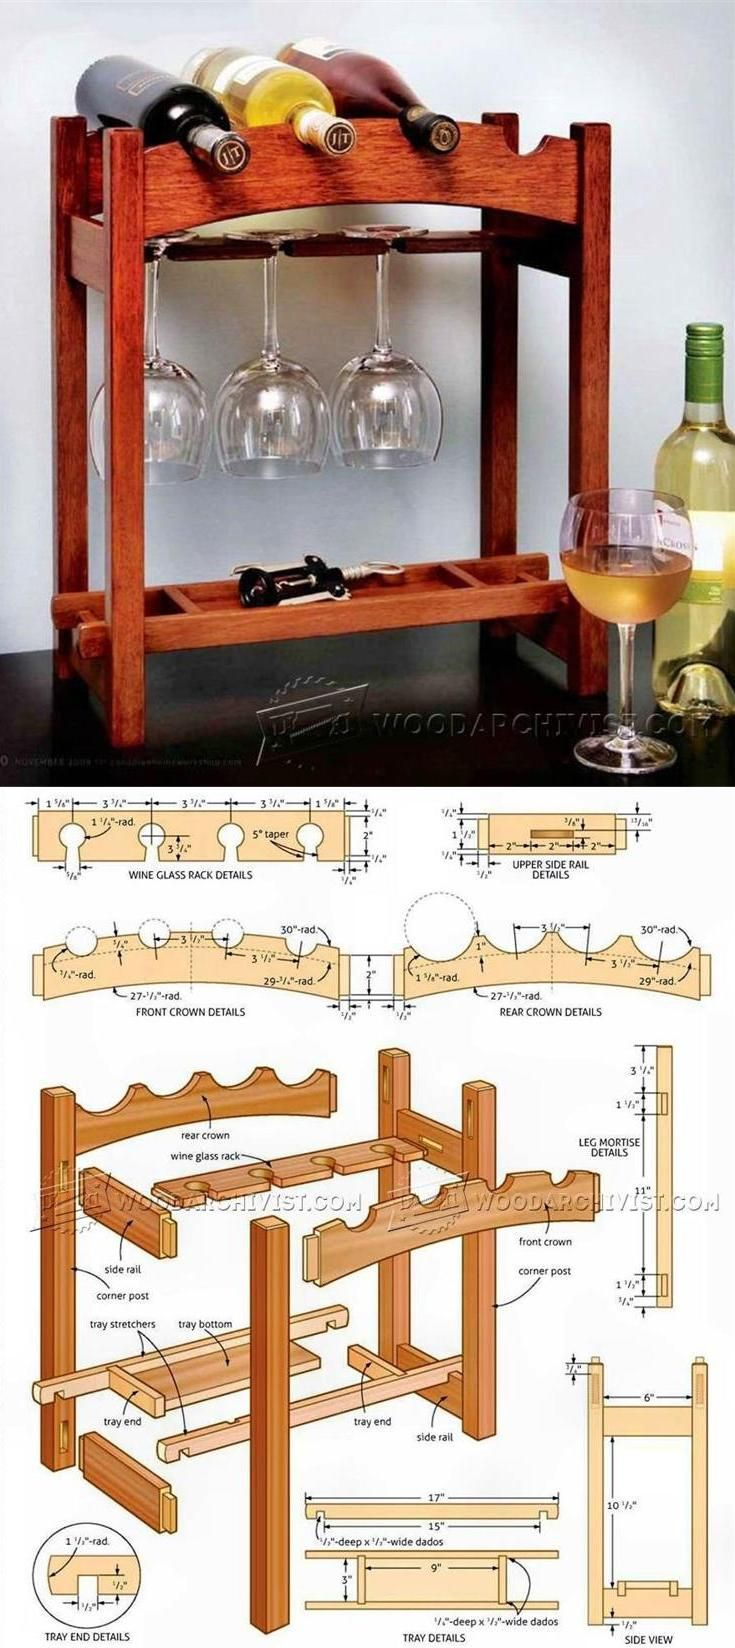 Wine Rack Plans - Furniture Plans and Projects | WoodArchivist.com